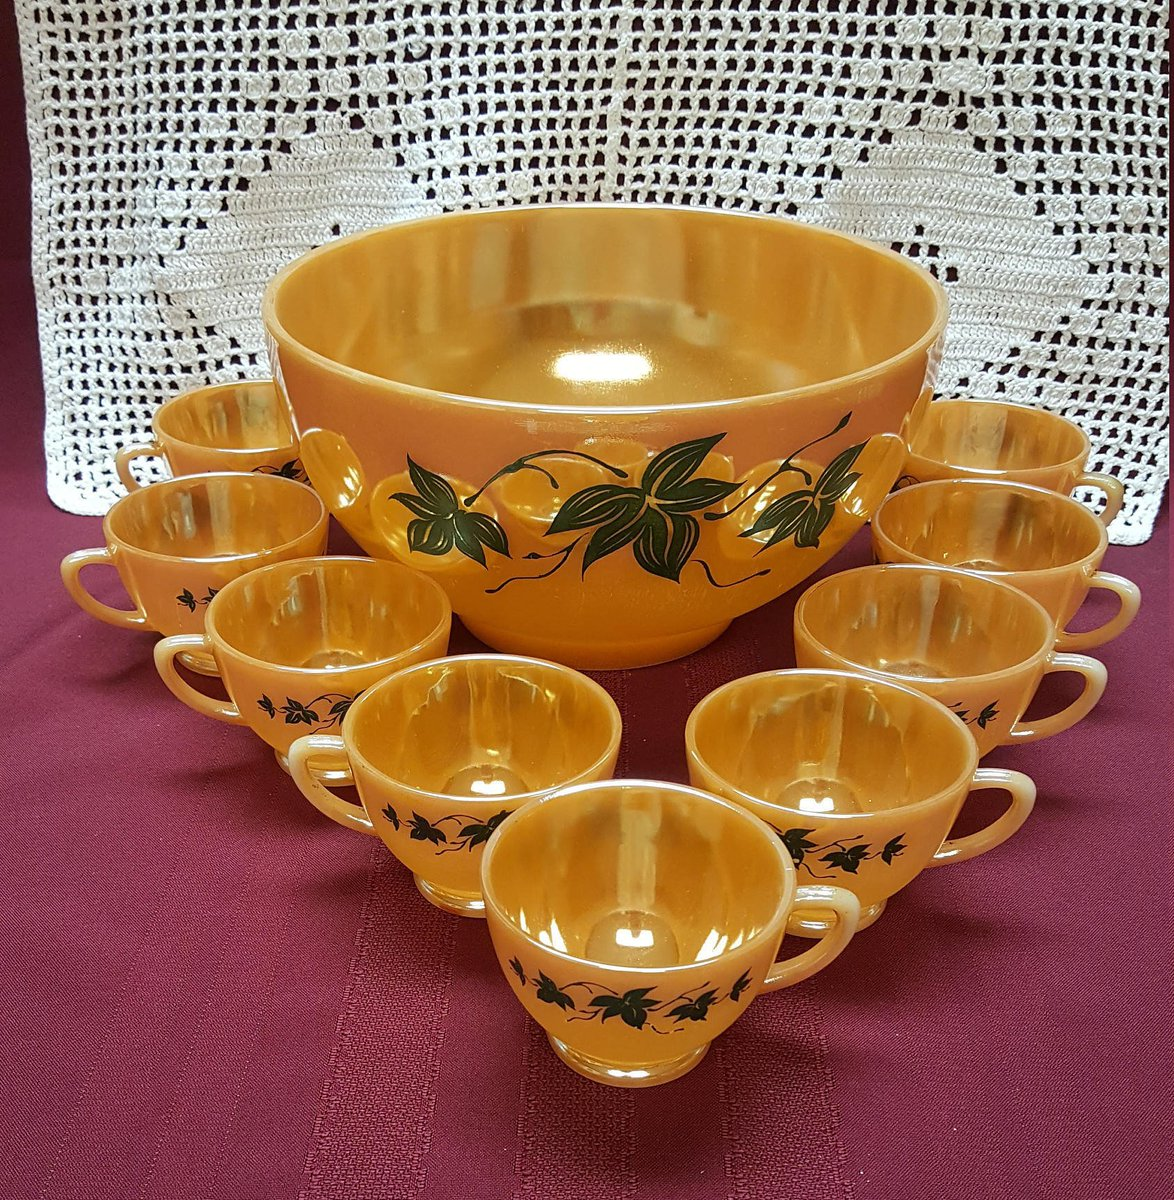 FIREKING Orange Luster PUNCHBOWL &amp; 9 Cups, Peach Lustre,  Summer Autumn Wedding, Thanksgiving, Dining Kitchen Cottage Fall Decor, Movie Prop  https:// etsy.me/2q2y5TV  &nbsp;   #AmazingFunVintage #Etsy #Amazingfunvintage<br>http://pic.twitter.com/M0uUGaJNsi